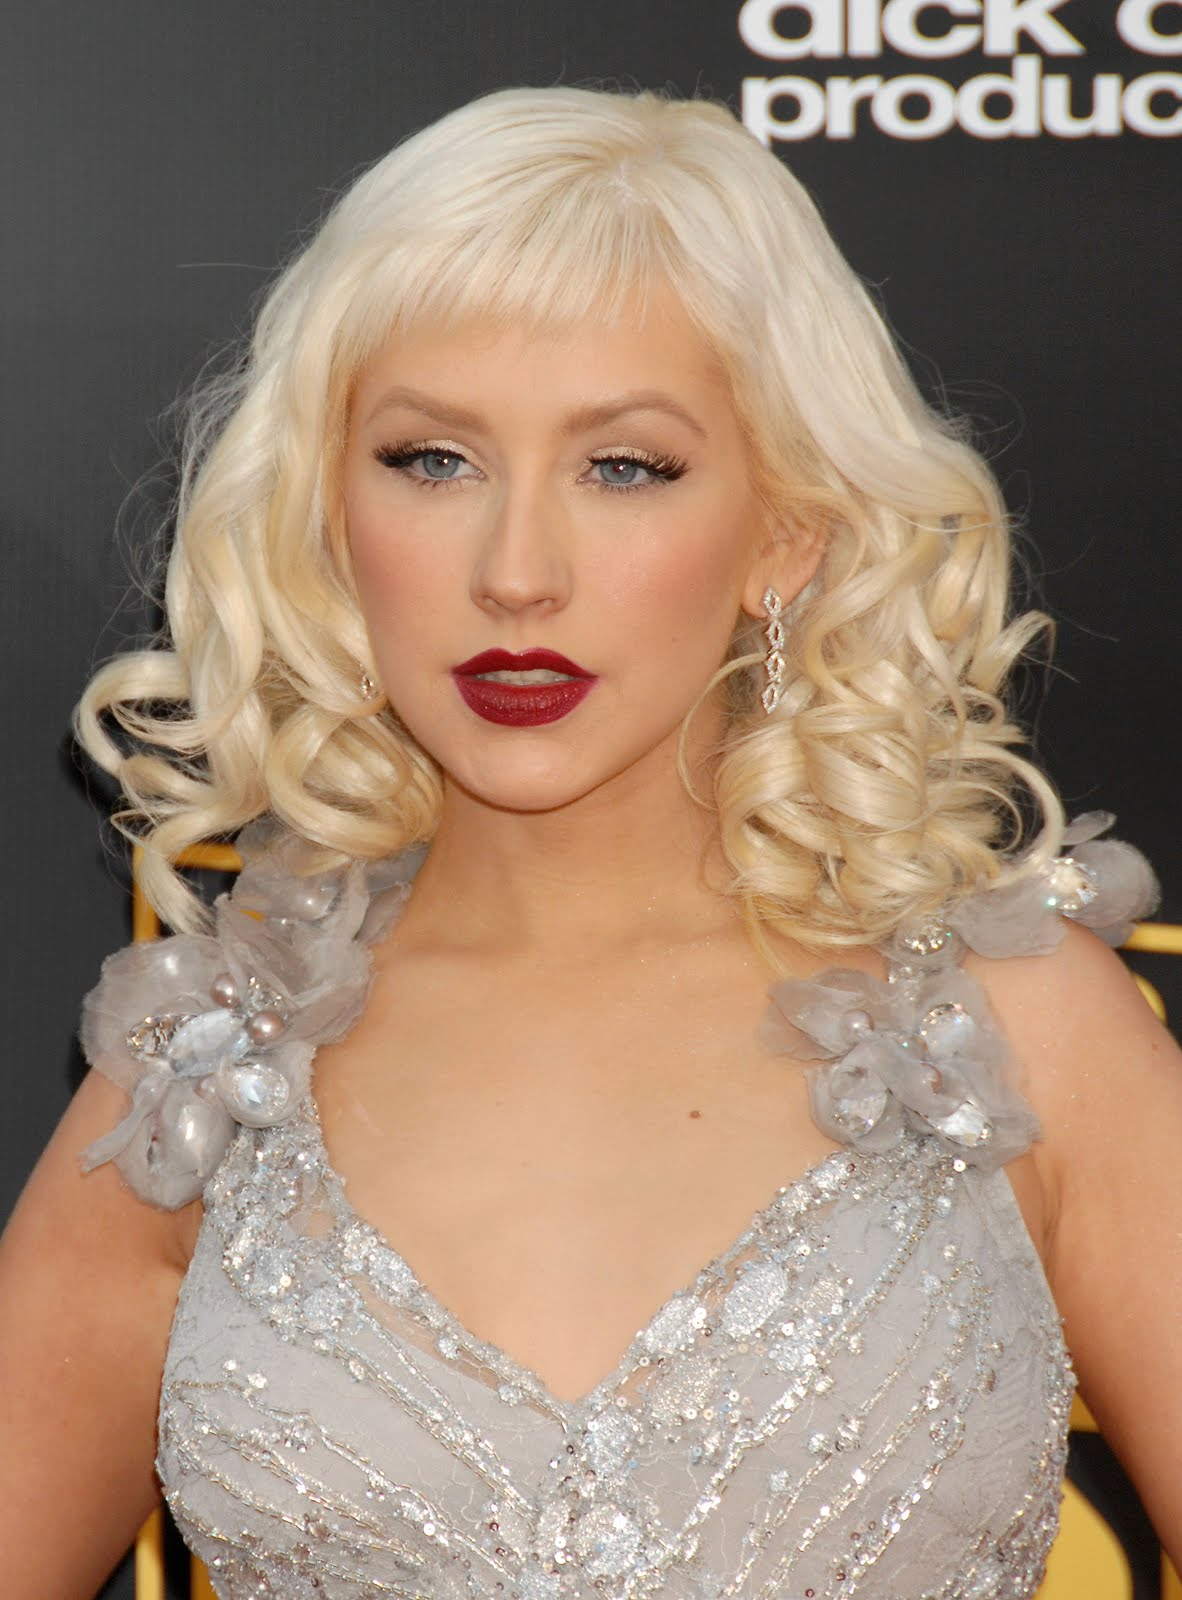 Christina Aguilera Leaked Nude Photos 15